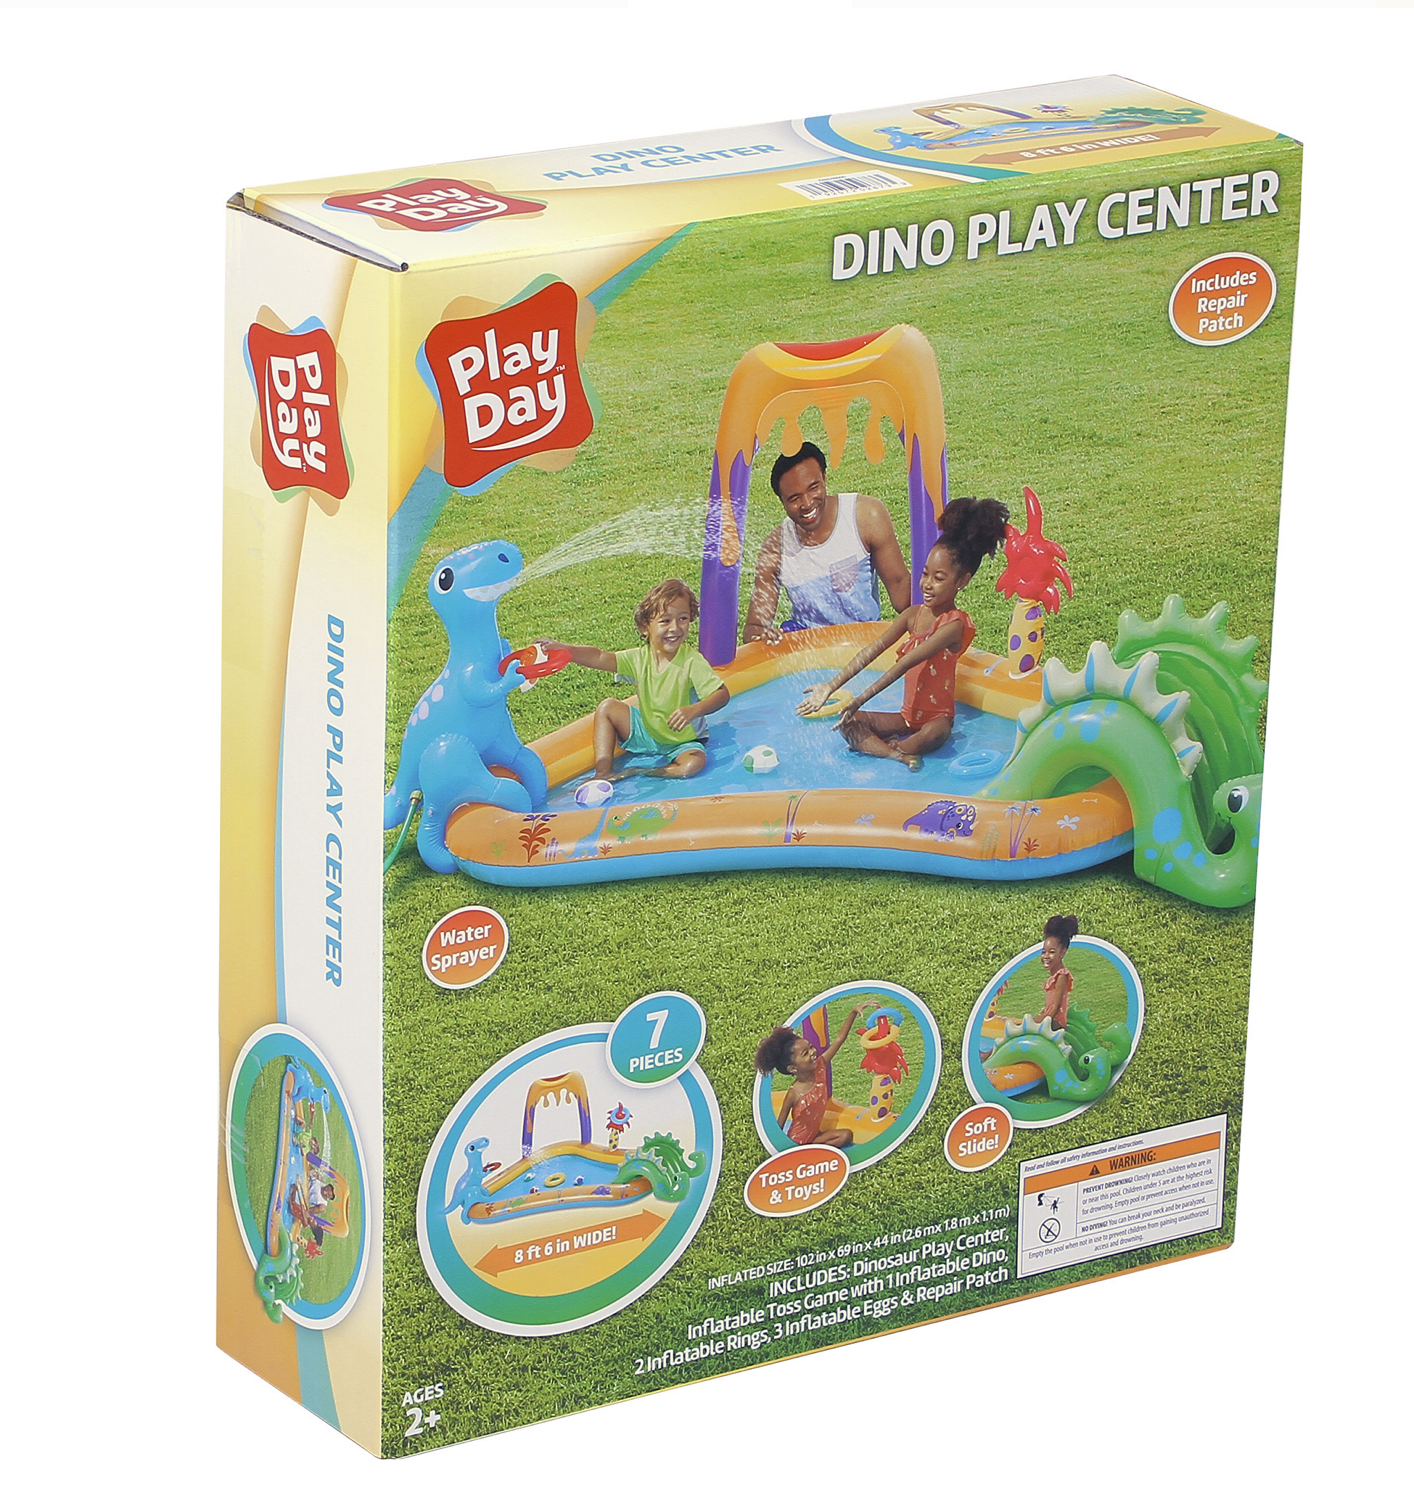 2021 Play Day Dino Play Center Inflatable Pool 102